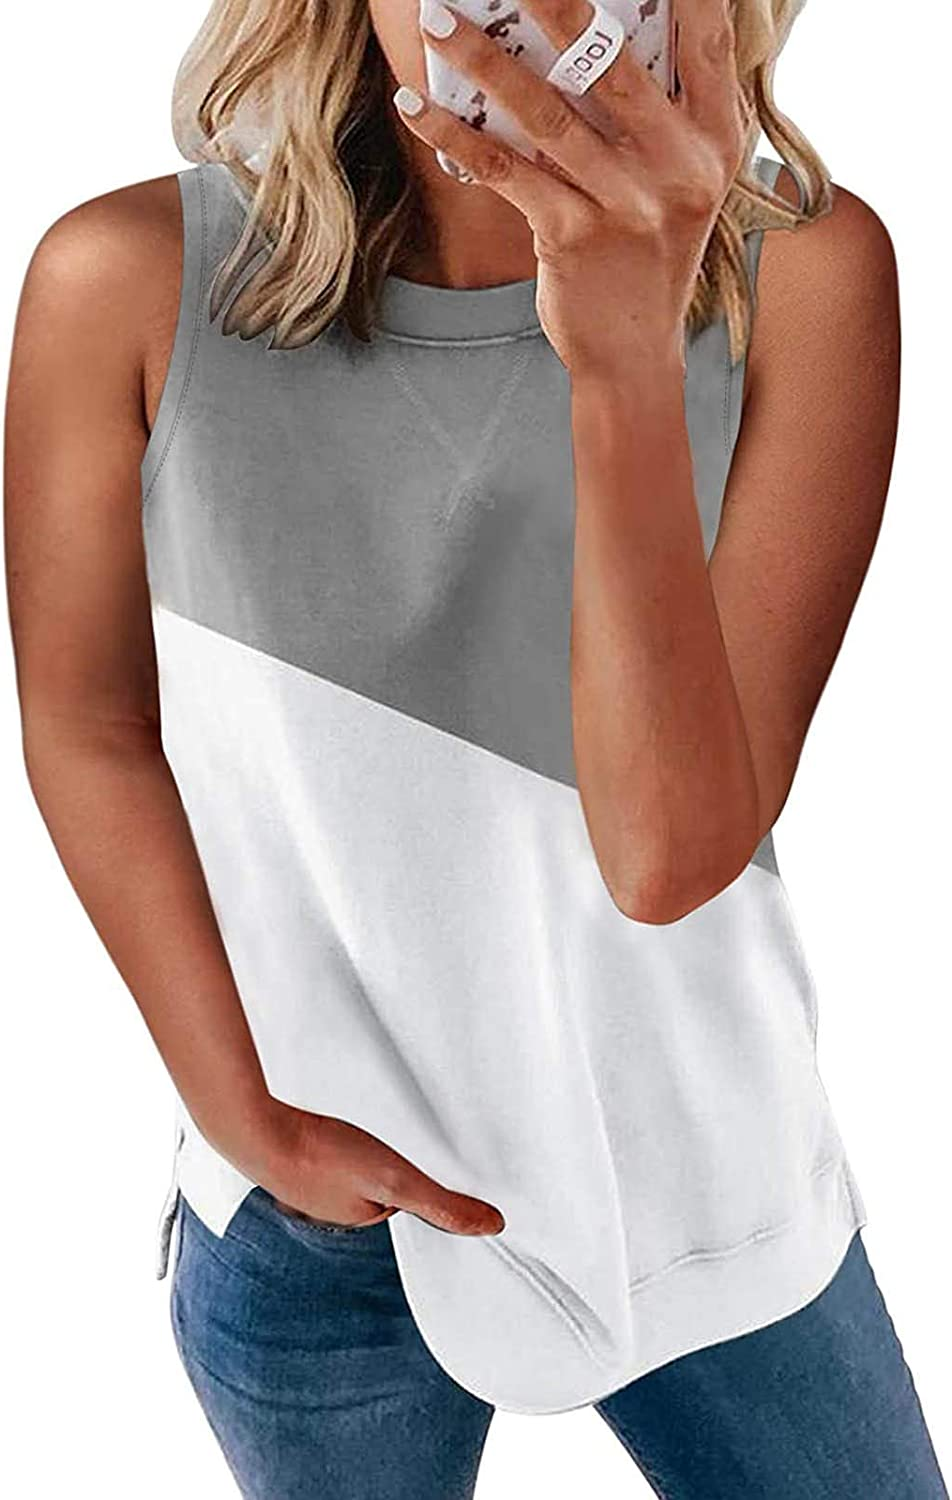 Gerichy Tank Tops for Women, Womens Casual Summer Tank Tops Loose Fit Sleeveless Workout Blouses Shirts Vest Tunics